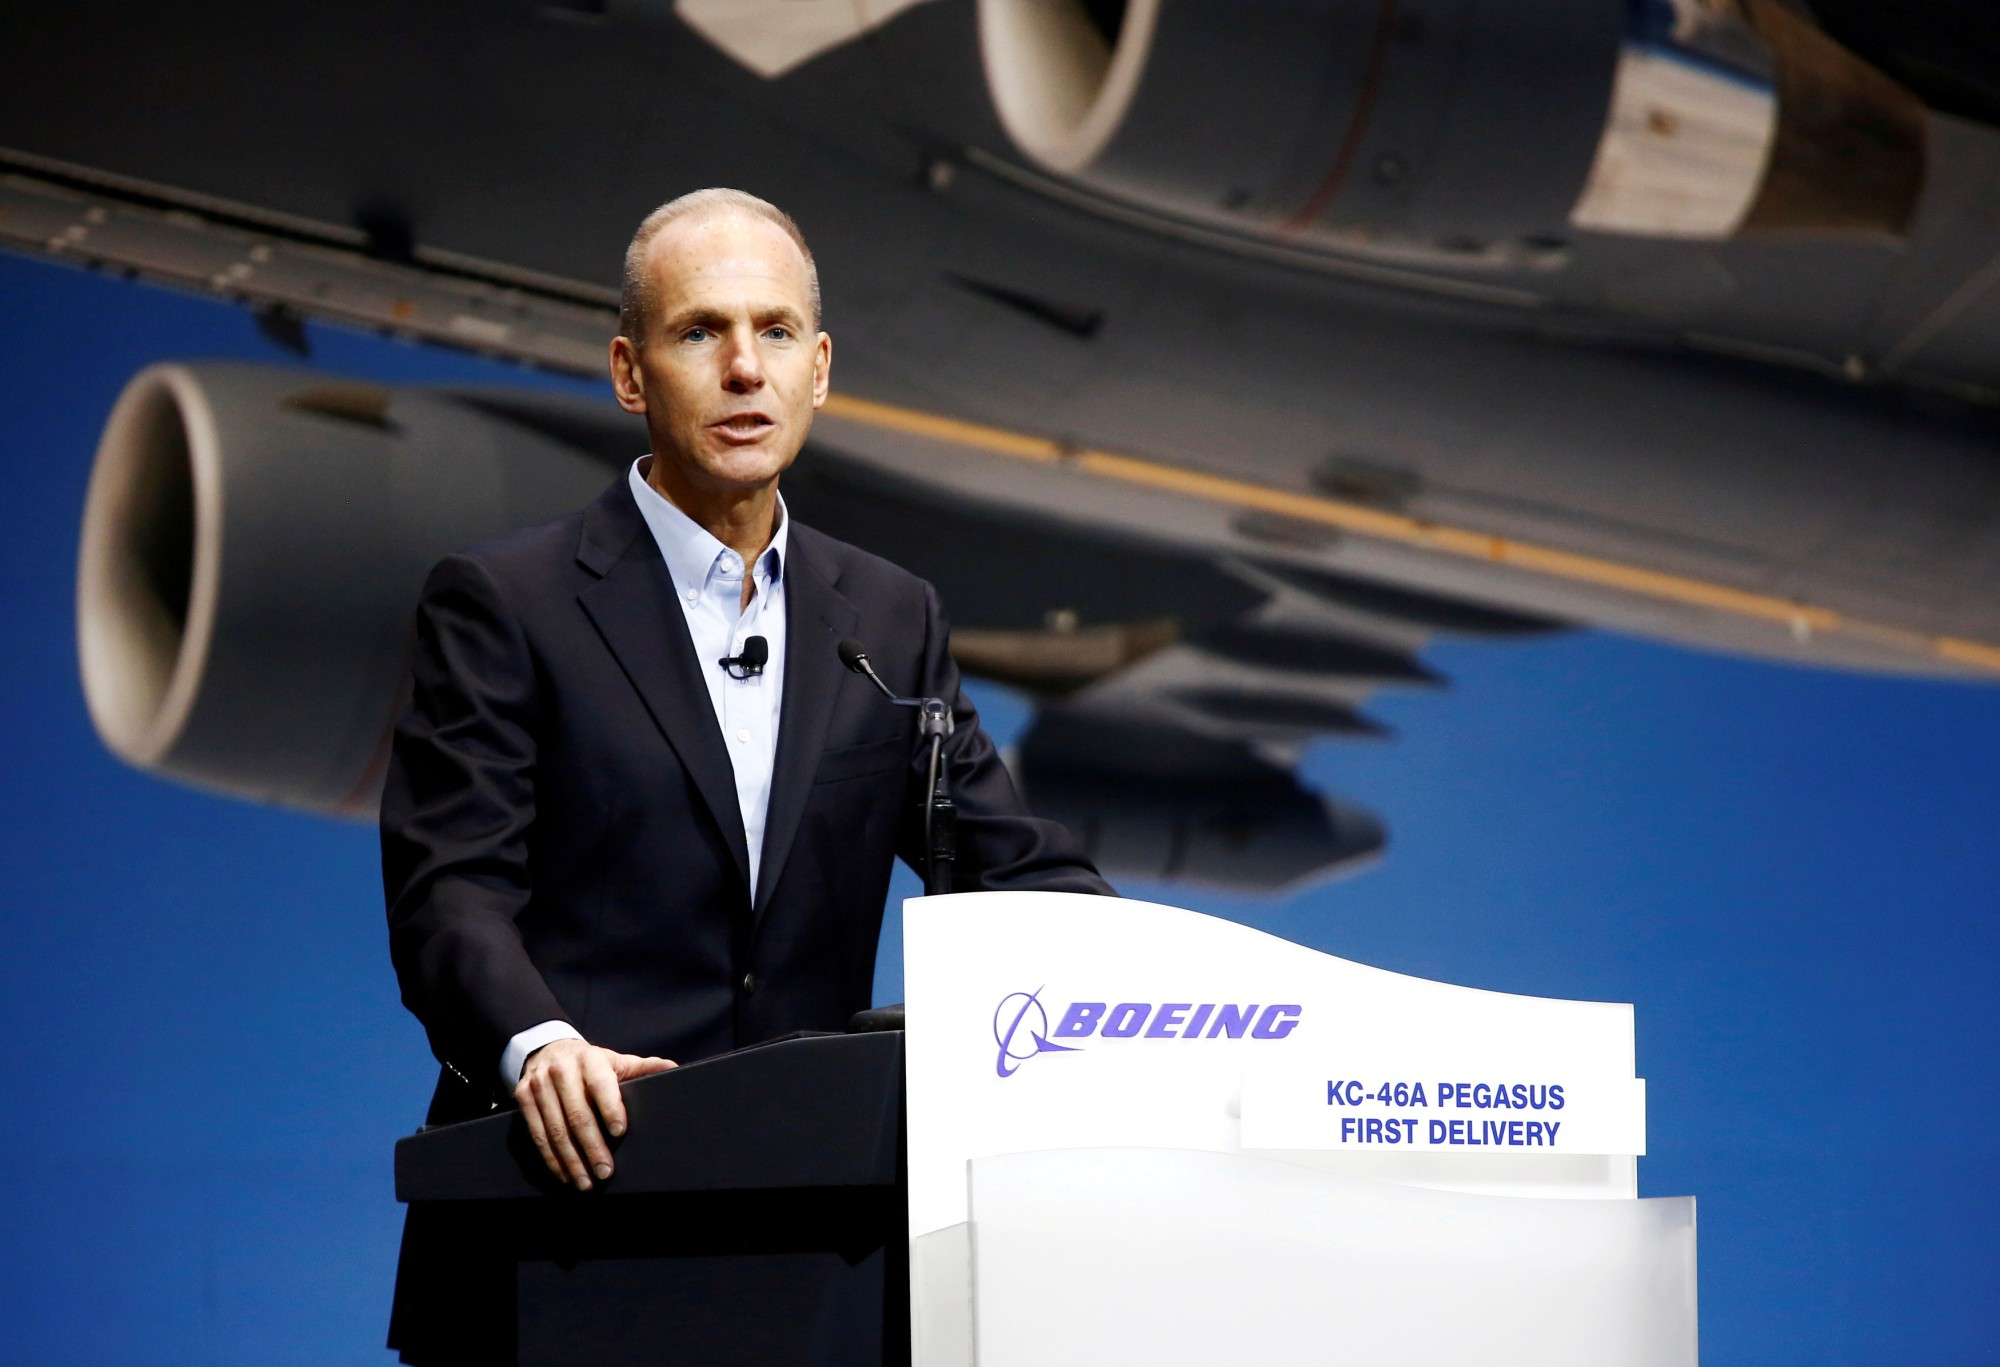 Boeing Chairman, President and CEO Dennis Muilenburg speaks during a delivery celebration of the Boeing KC-46 Pegasus aerial refueling tanker to the U.S. Air Force in Everett, Washington, in January. | REUTERS